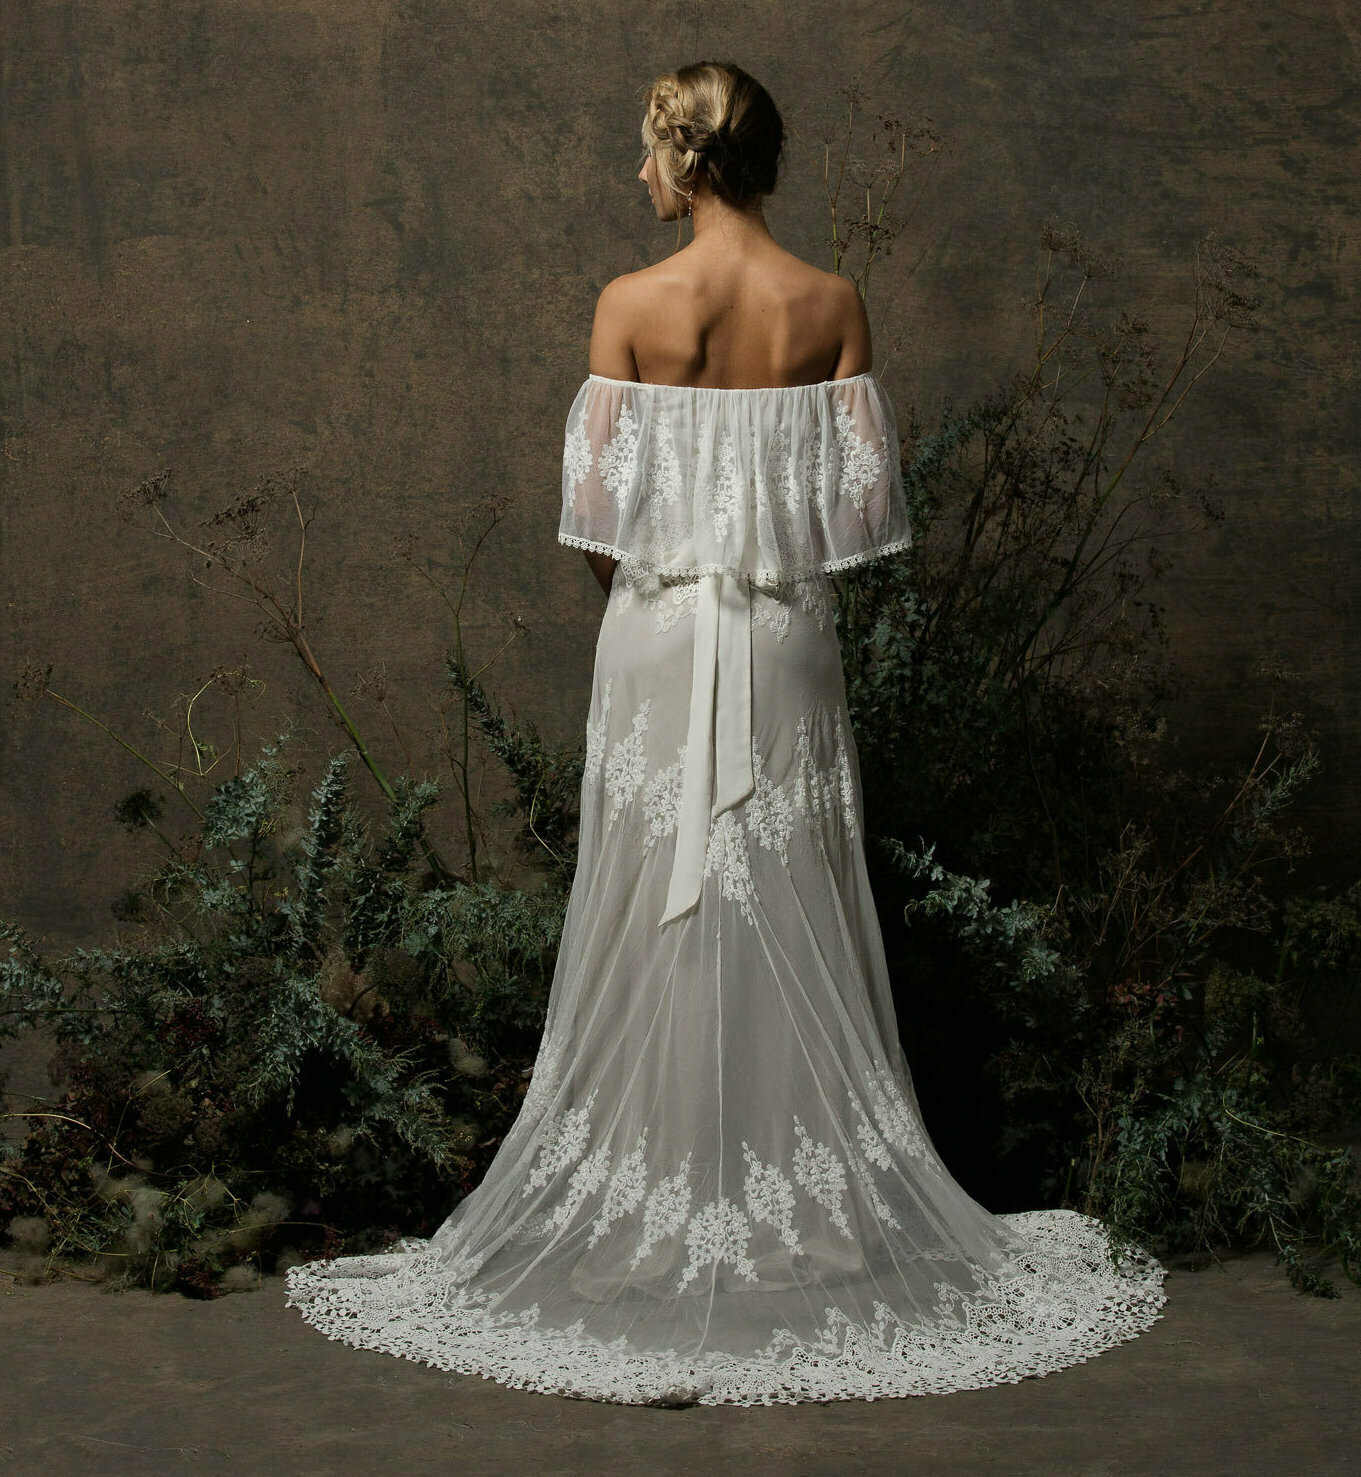 off-white-nude-liner-lace-wedding-dress-with-off-shoulder-neckline